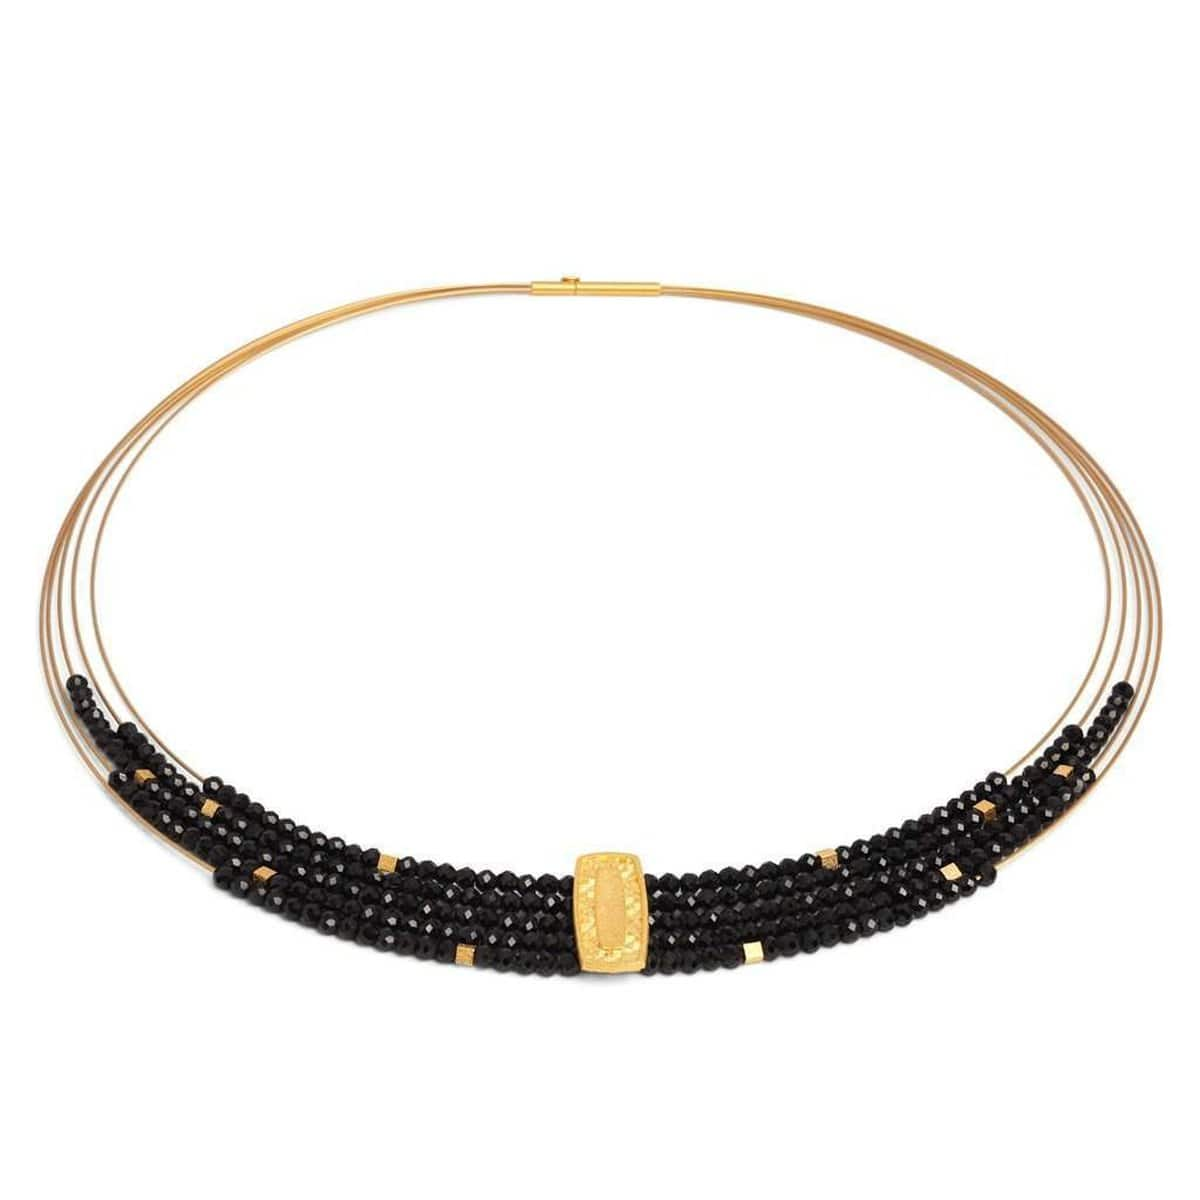 Movena Black Spinel Necklace - 84922496-Bernd Wolf-Renee Taylor Gallery